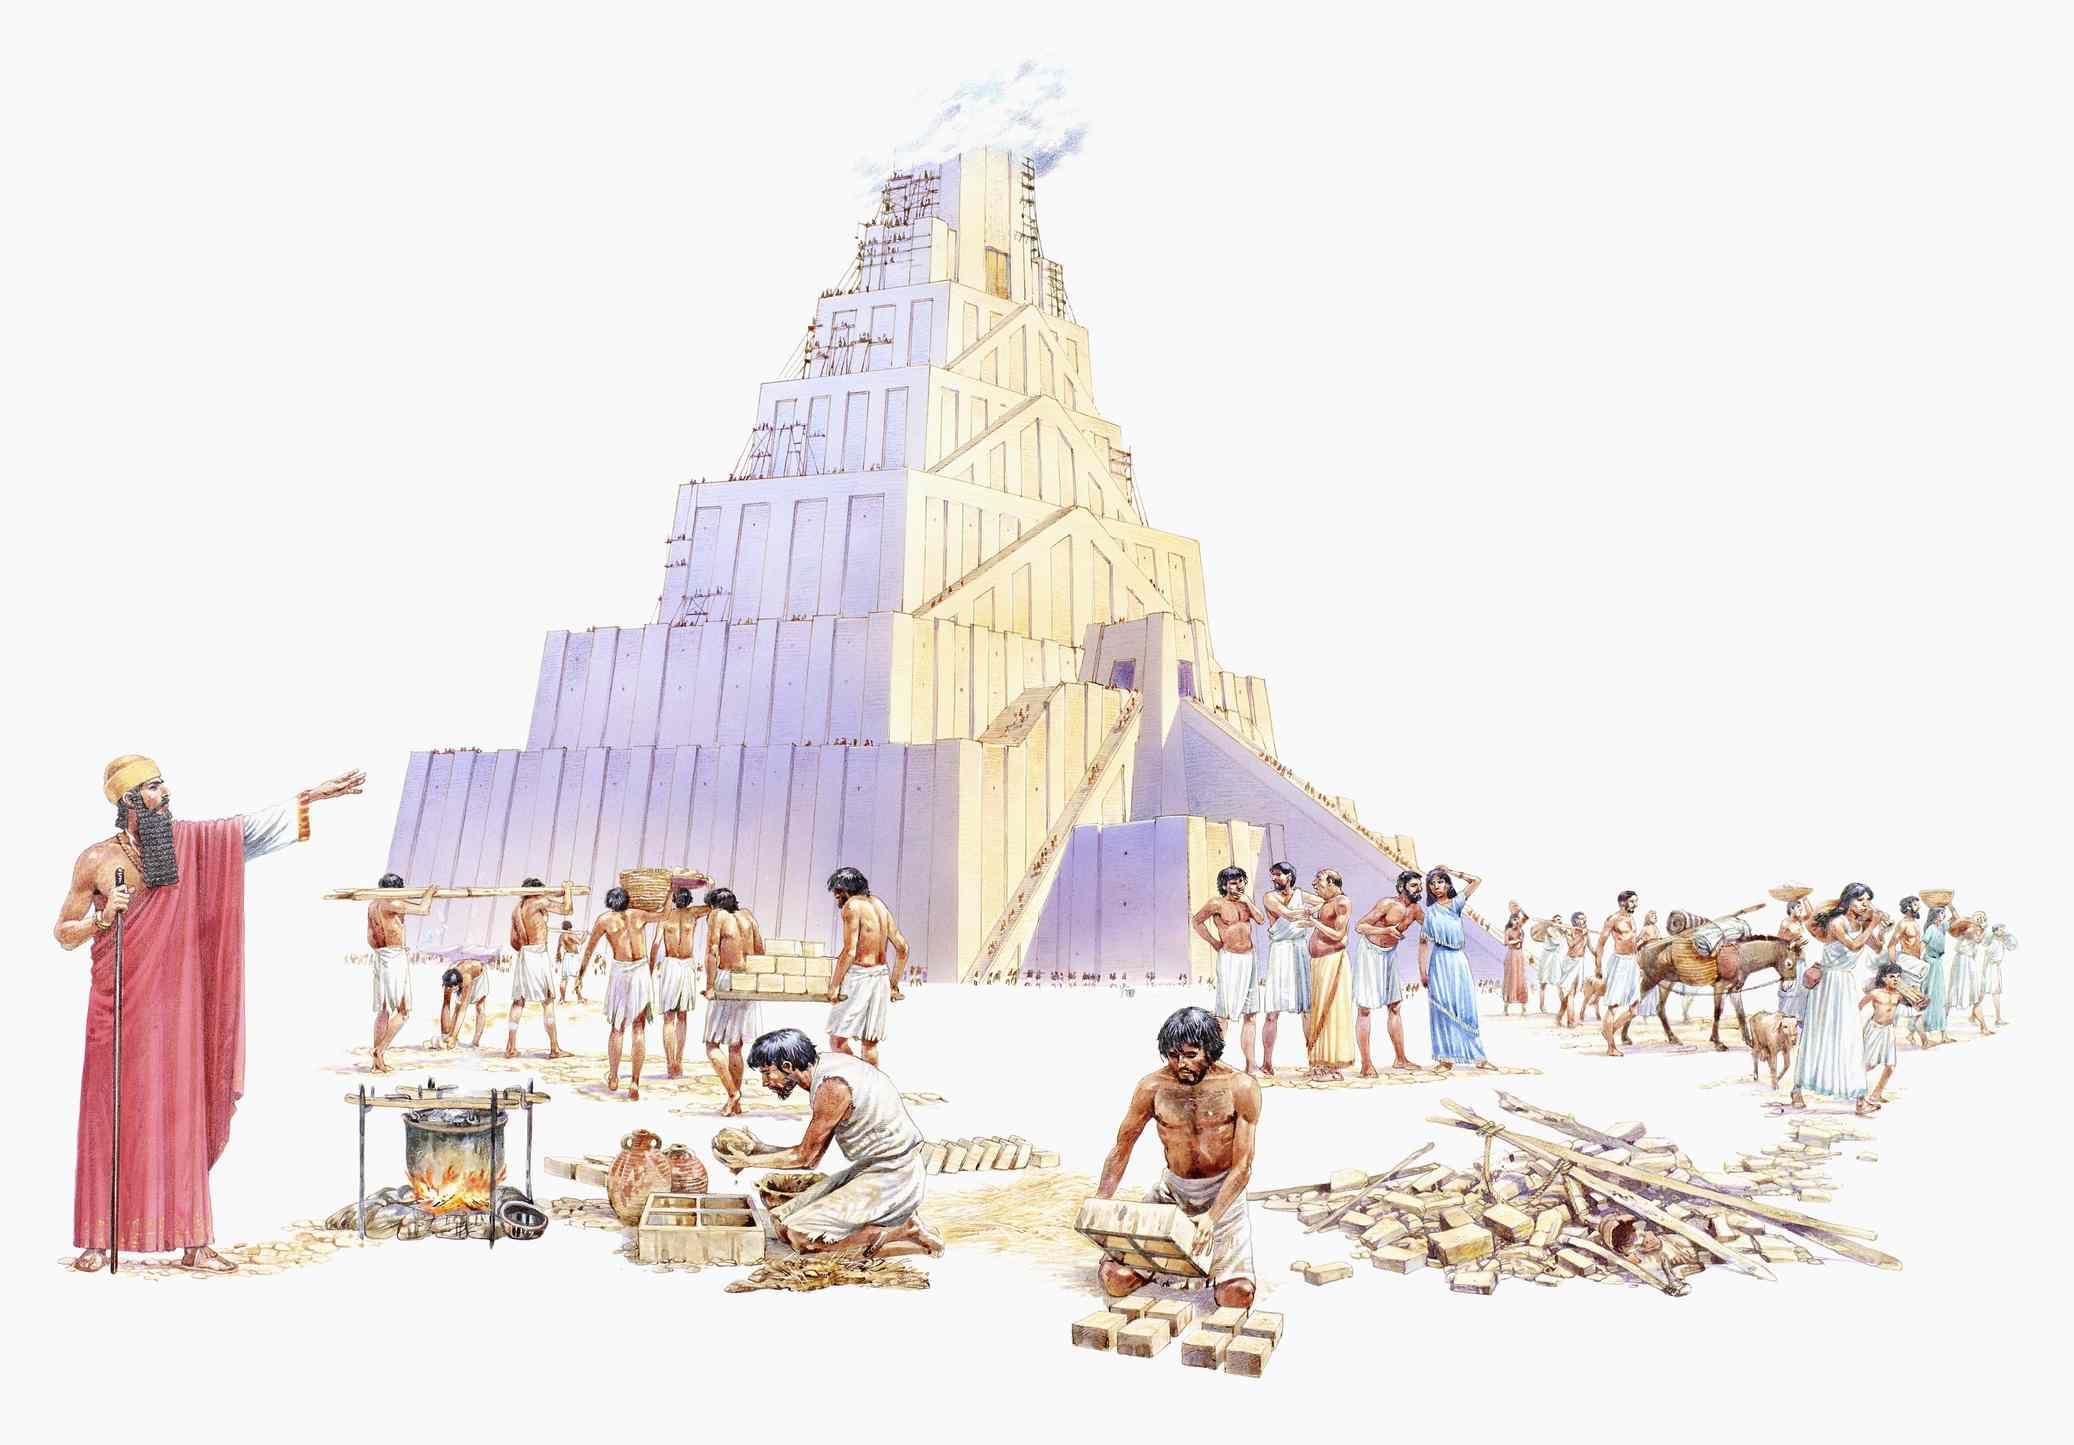 King Nimrod building the Tower of Babel